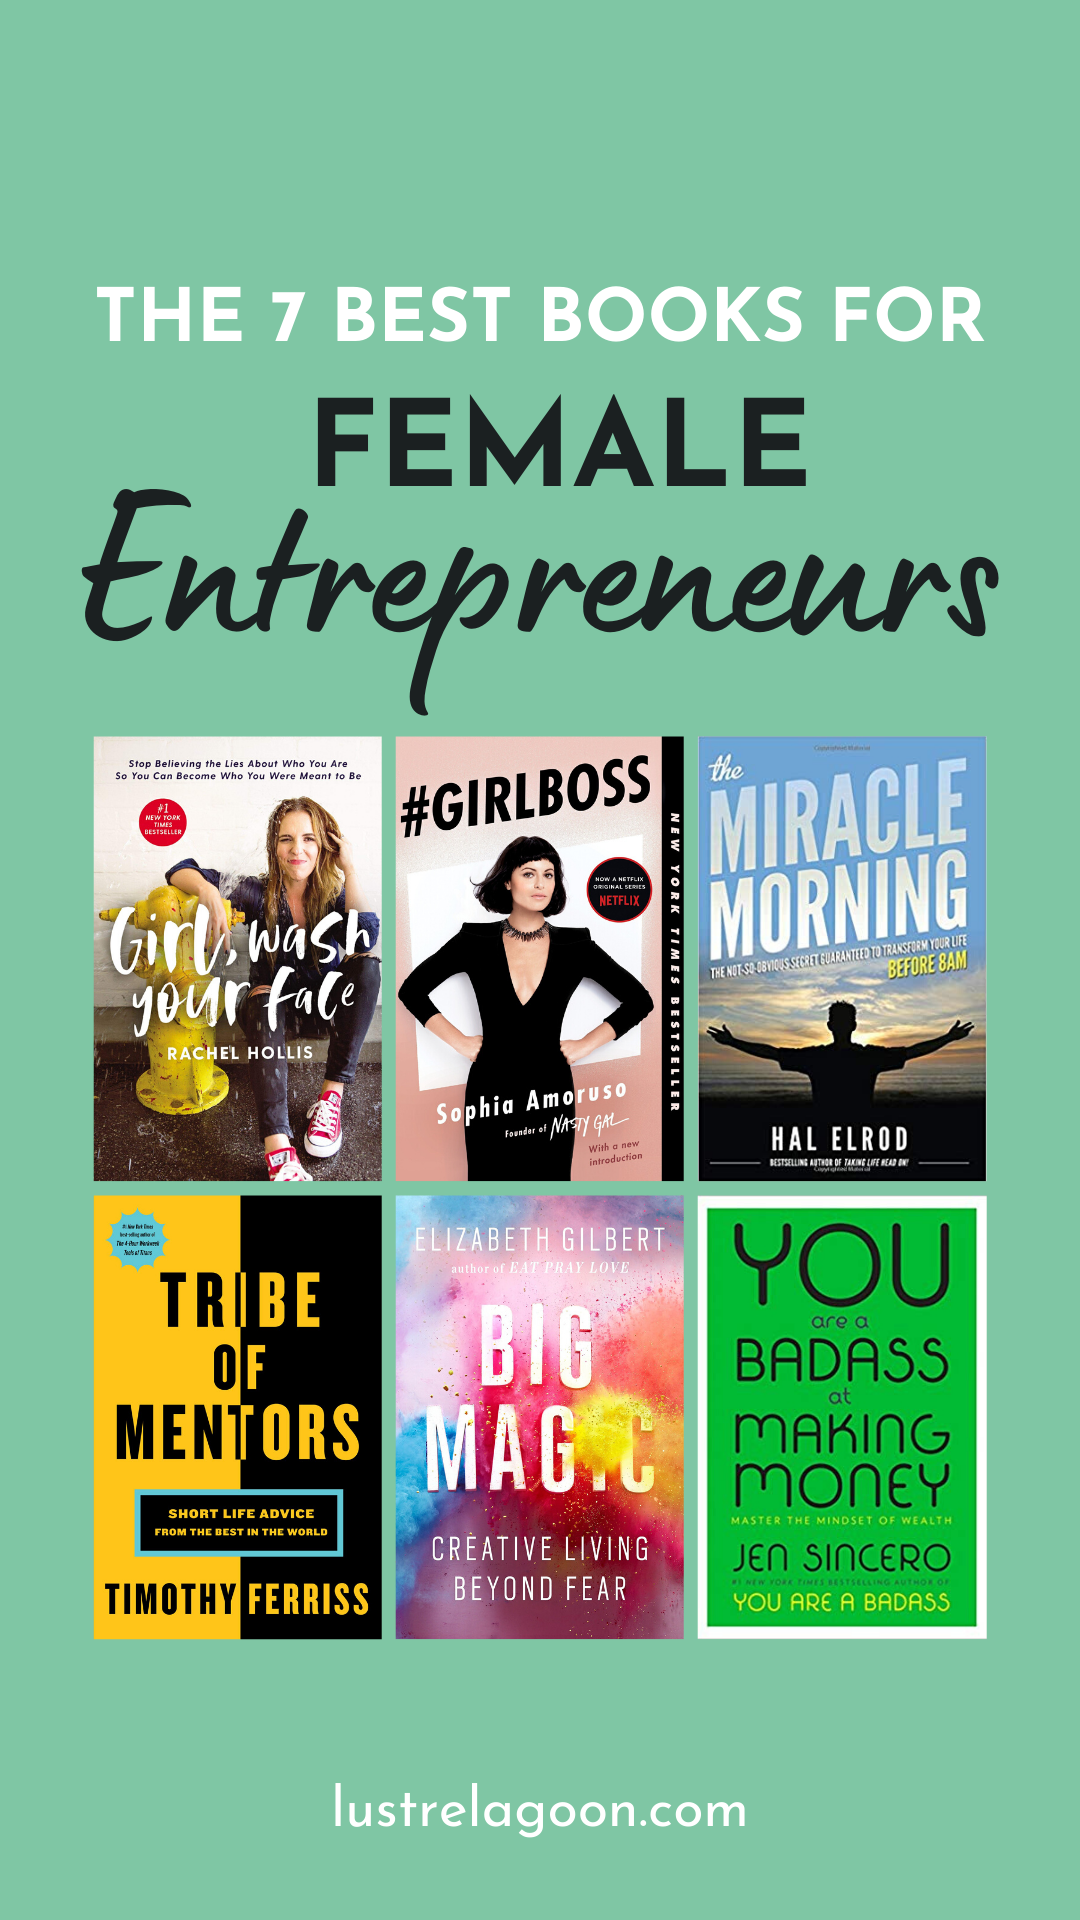 Skyrocket your success with 7 of the best books for female entrepreneurs. These girl boss books will inspire you to become your best self and take your career to the next level. See my 2020 reading list now! #booksforfemaleentrepreneurs #bookstoreadinyour20s #motivationalbooksforwomen #girlbossbooks #bestbusinessbooks #lifechangingbooks